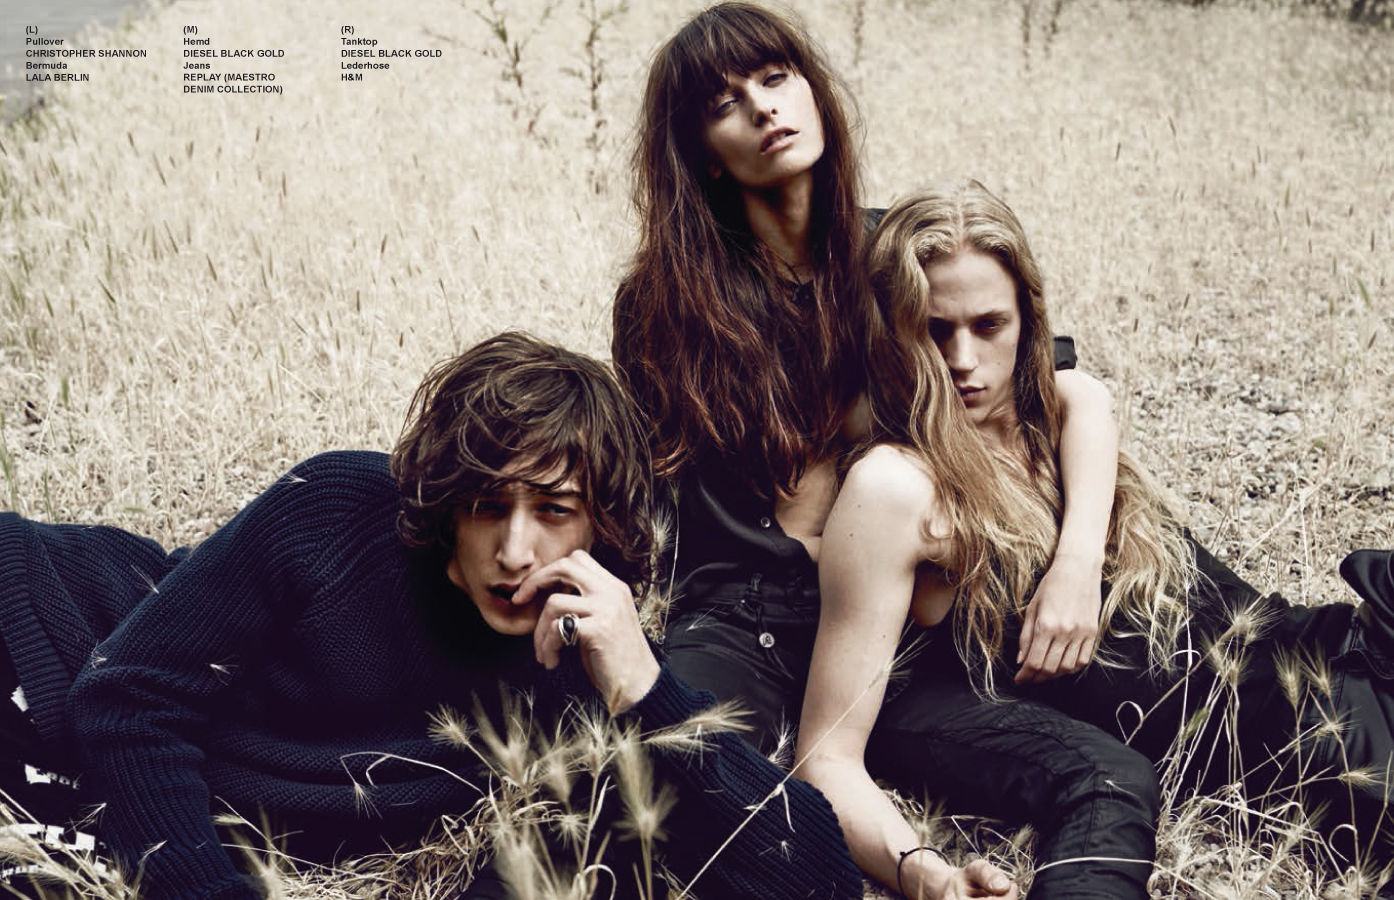 BALLSAAL: Peter Lux, Loni Baur & Wiebke Bredehorst for TUSH Magazine